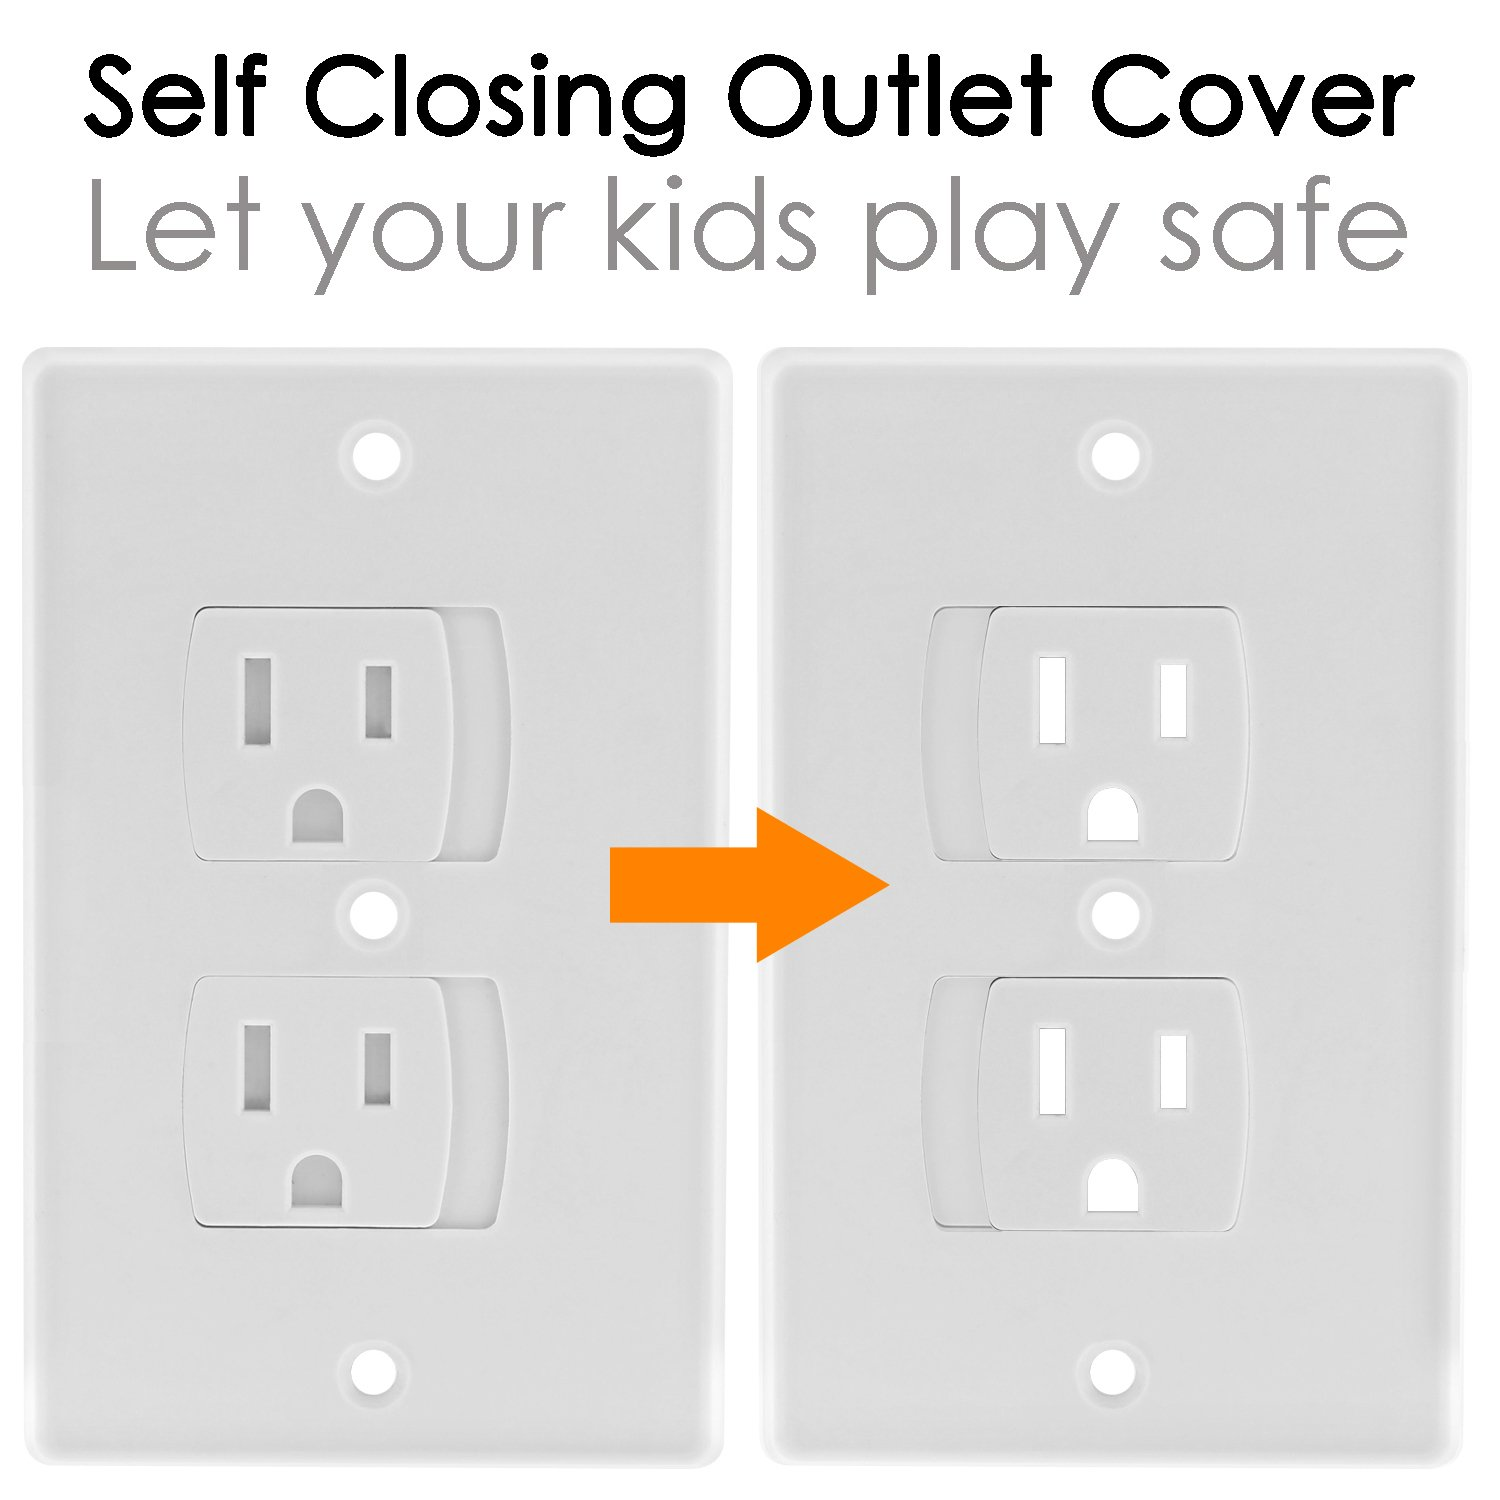 Self Closing Electrical Outlet Covers, Child Proof Safety Universal Wall Socket Plugs, Automatic Sliding Cap Cover Standard Wall Outlet Plate (8 Pack) by Baby Dröm (Image #2)